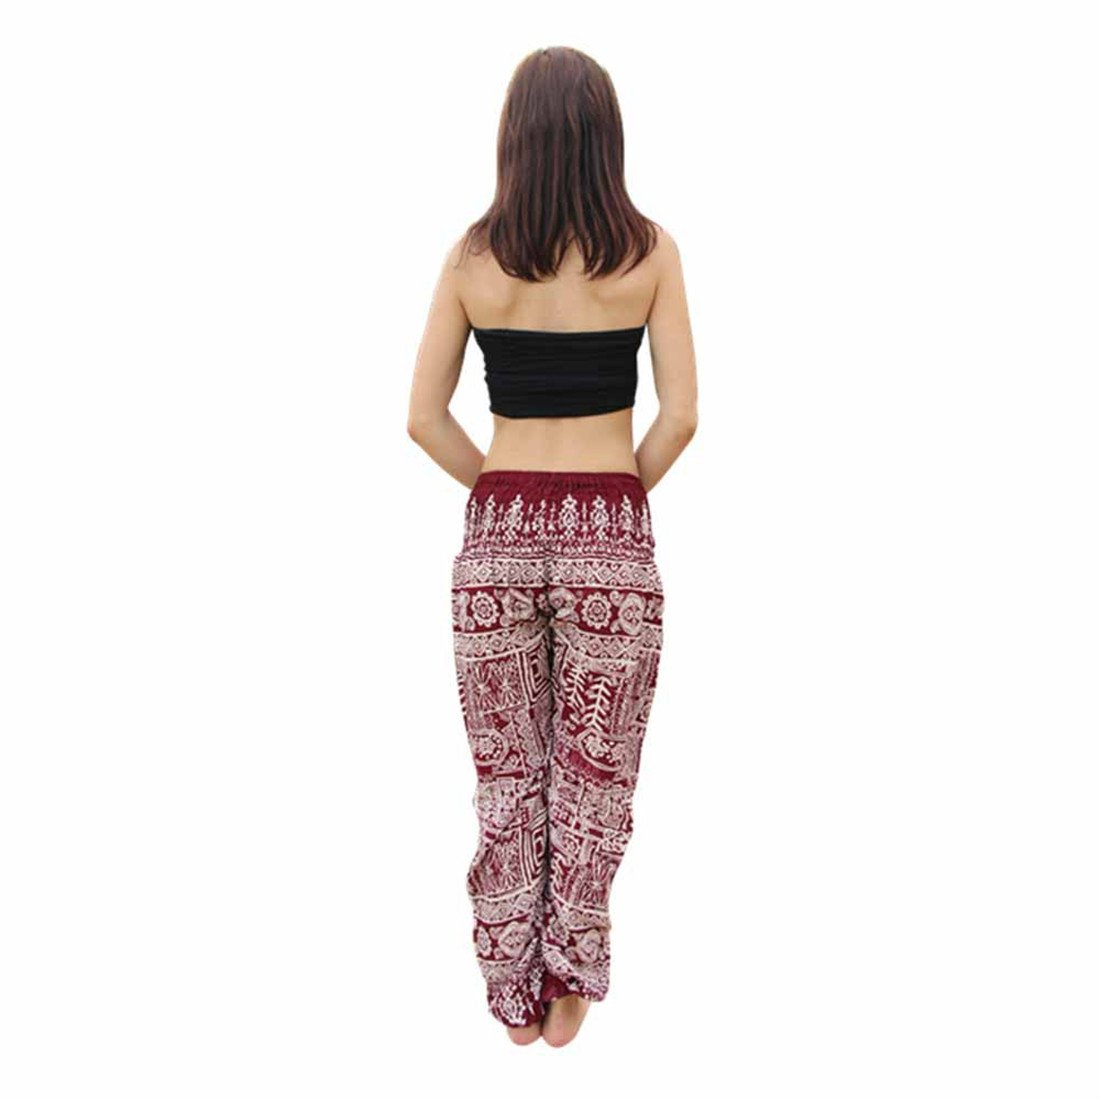 e7d5565d24 Womens Yoga Pants,YKA,Men Thai Harem Trousers Boho Festival Hippy Smock  High Waist Pants for Ladies - Purple - Free Size: Amazon.co.uk: Clothing